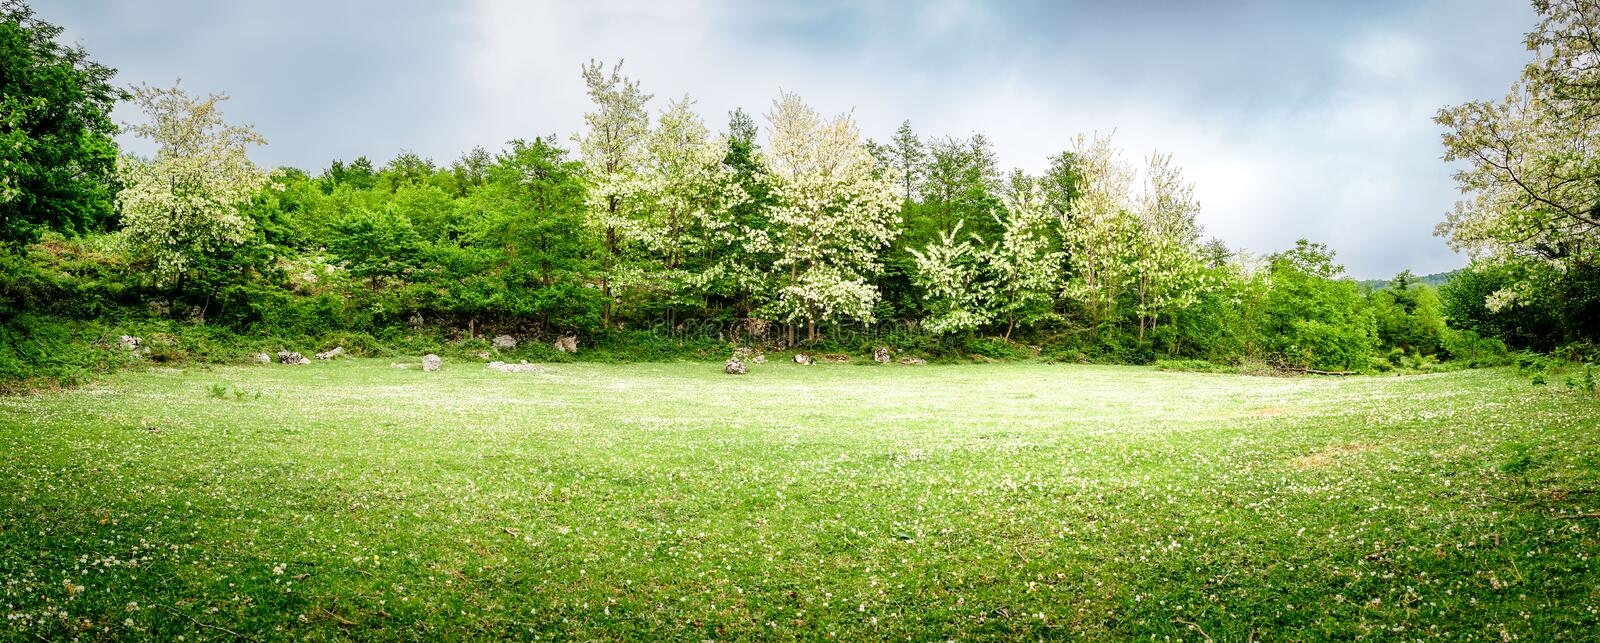 A beautiful green glade with flowering acacia trees and clover flowers. Panoramic view. Spring nature background royalty free stock photos